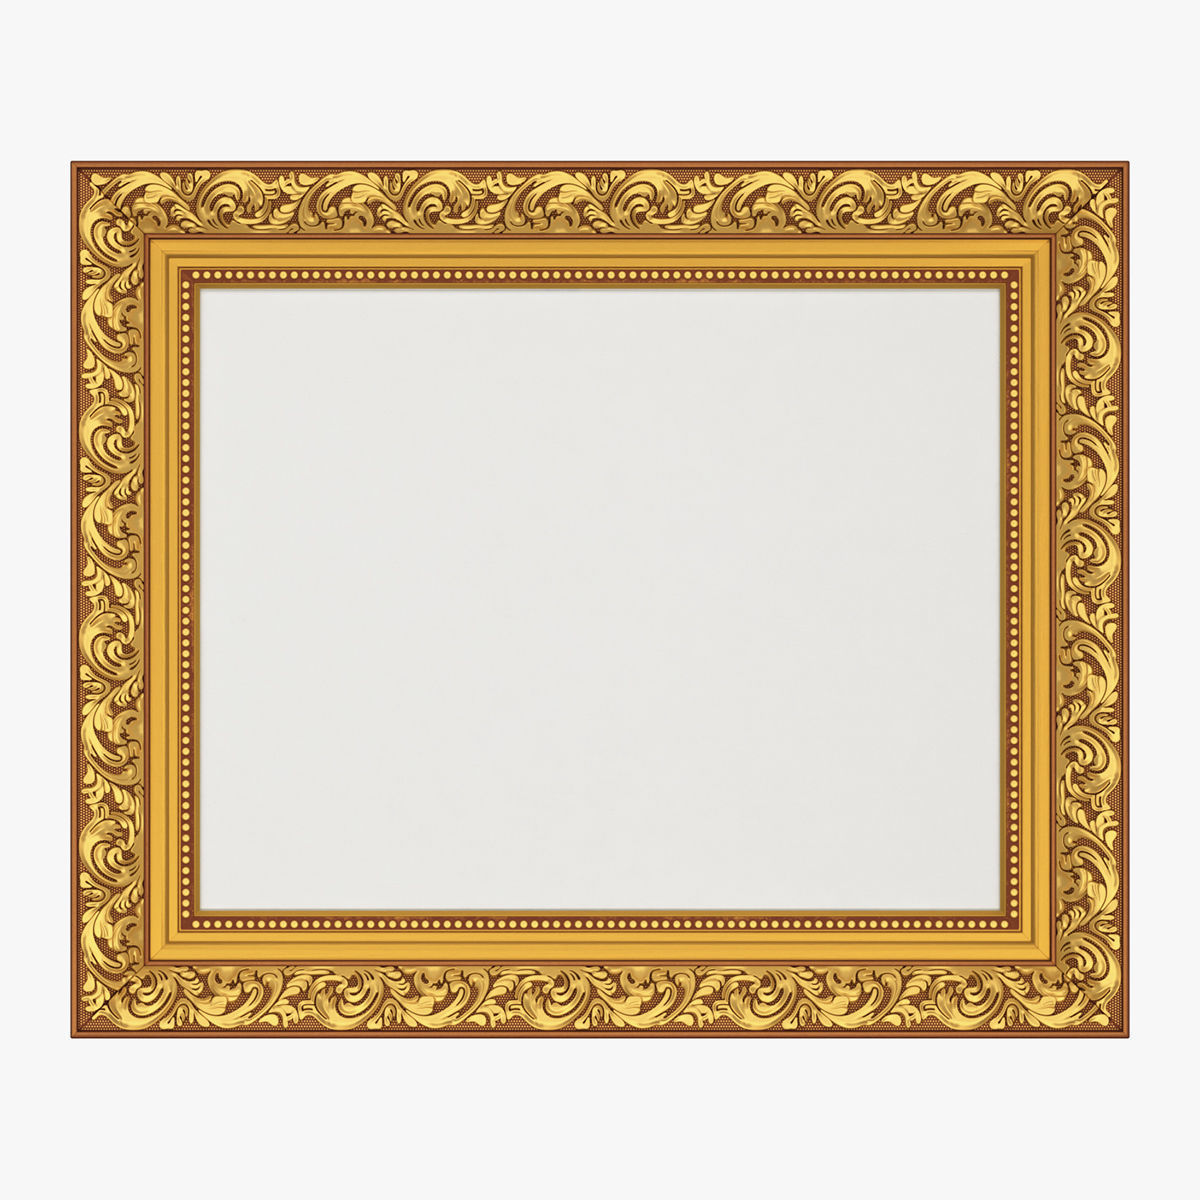 Frame picture gold v7